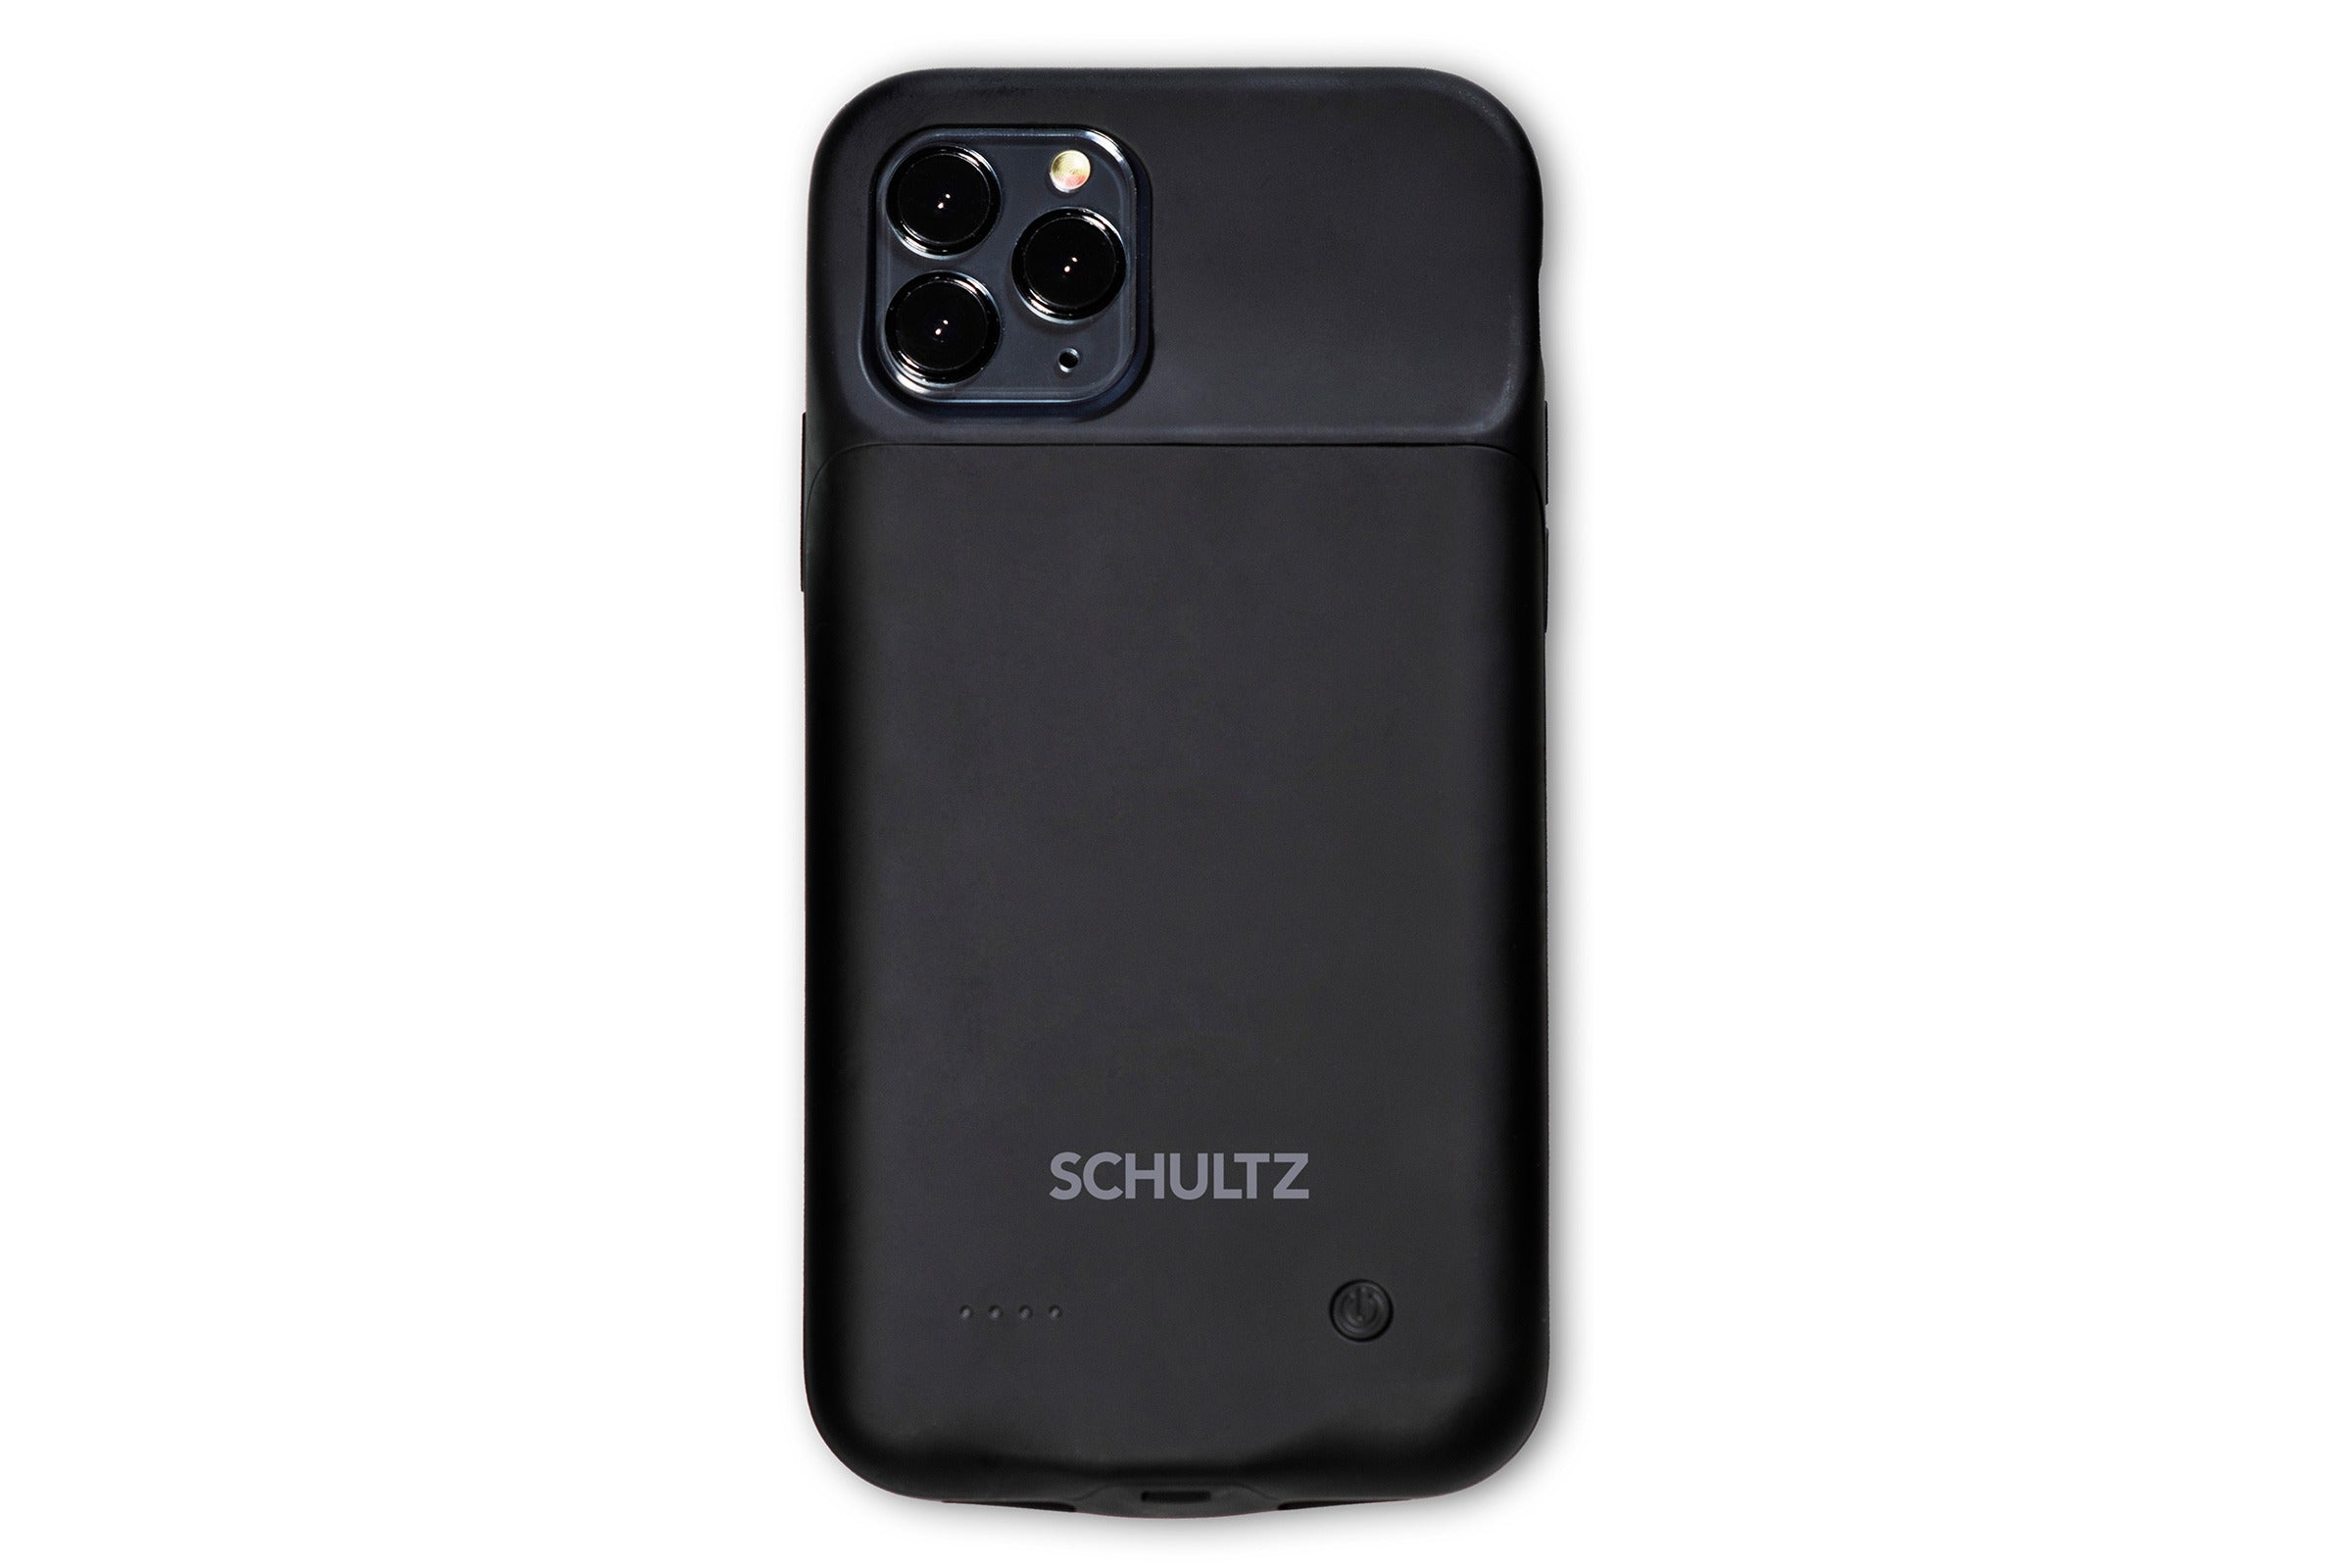 Schultz SmartPower Battery Case for iPhone 11 Pro